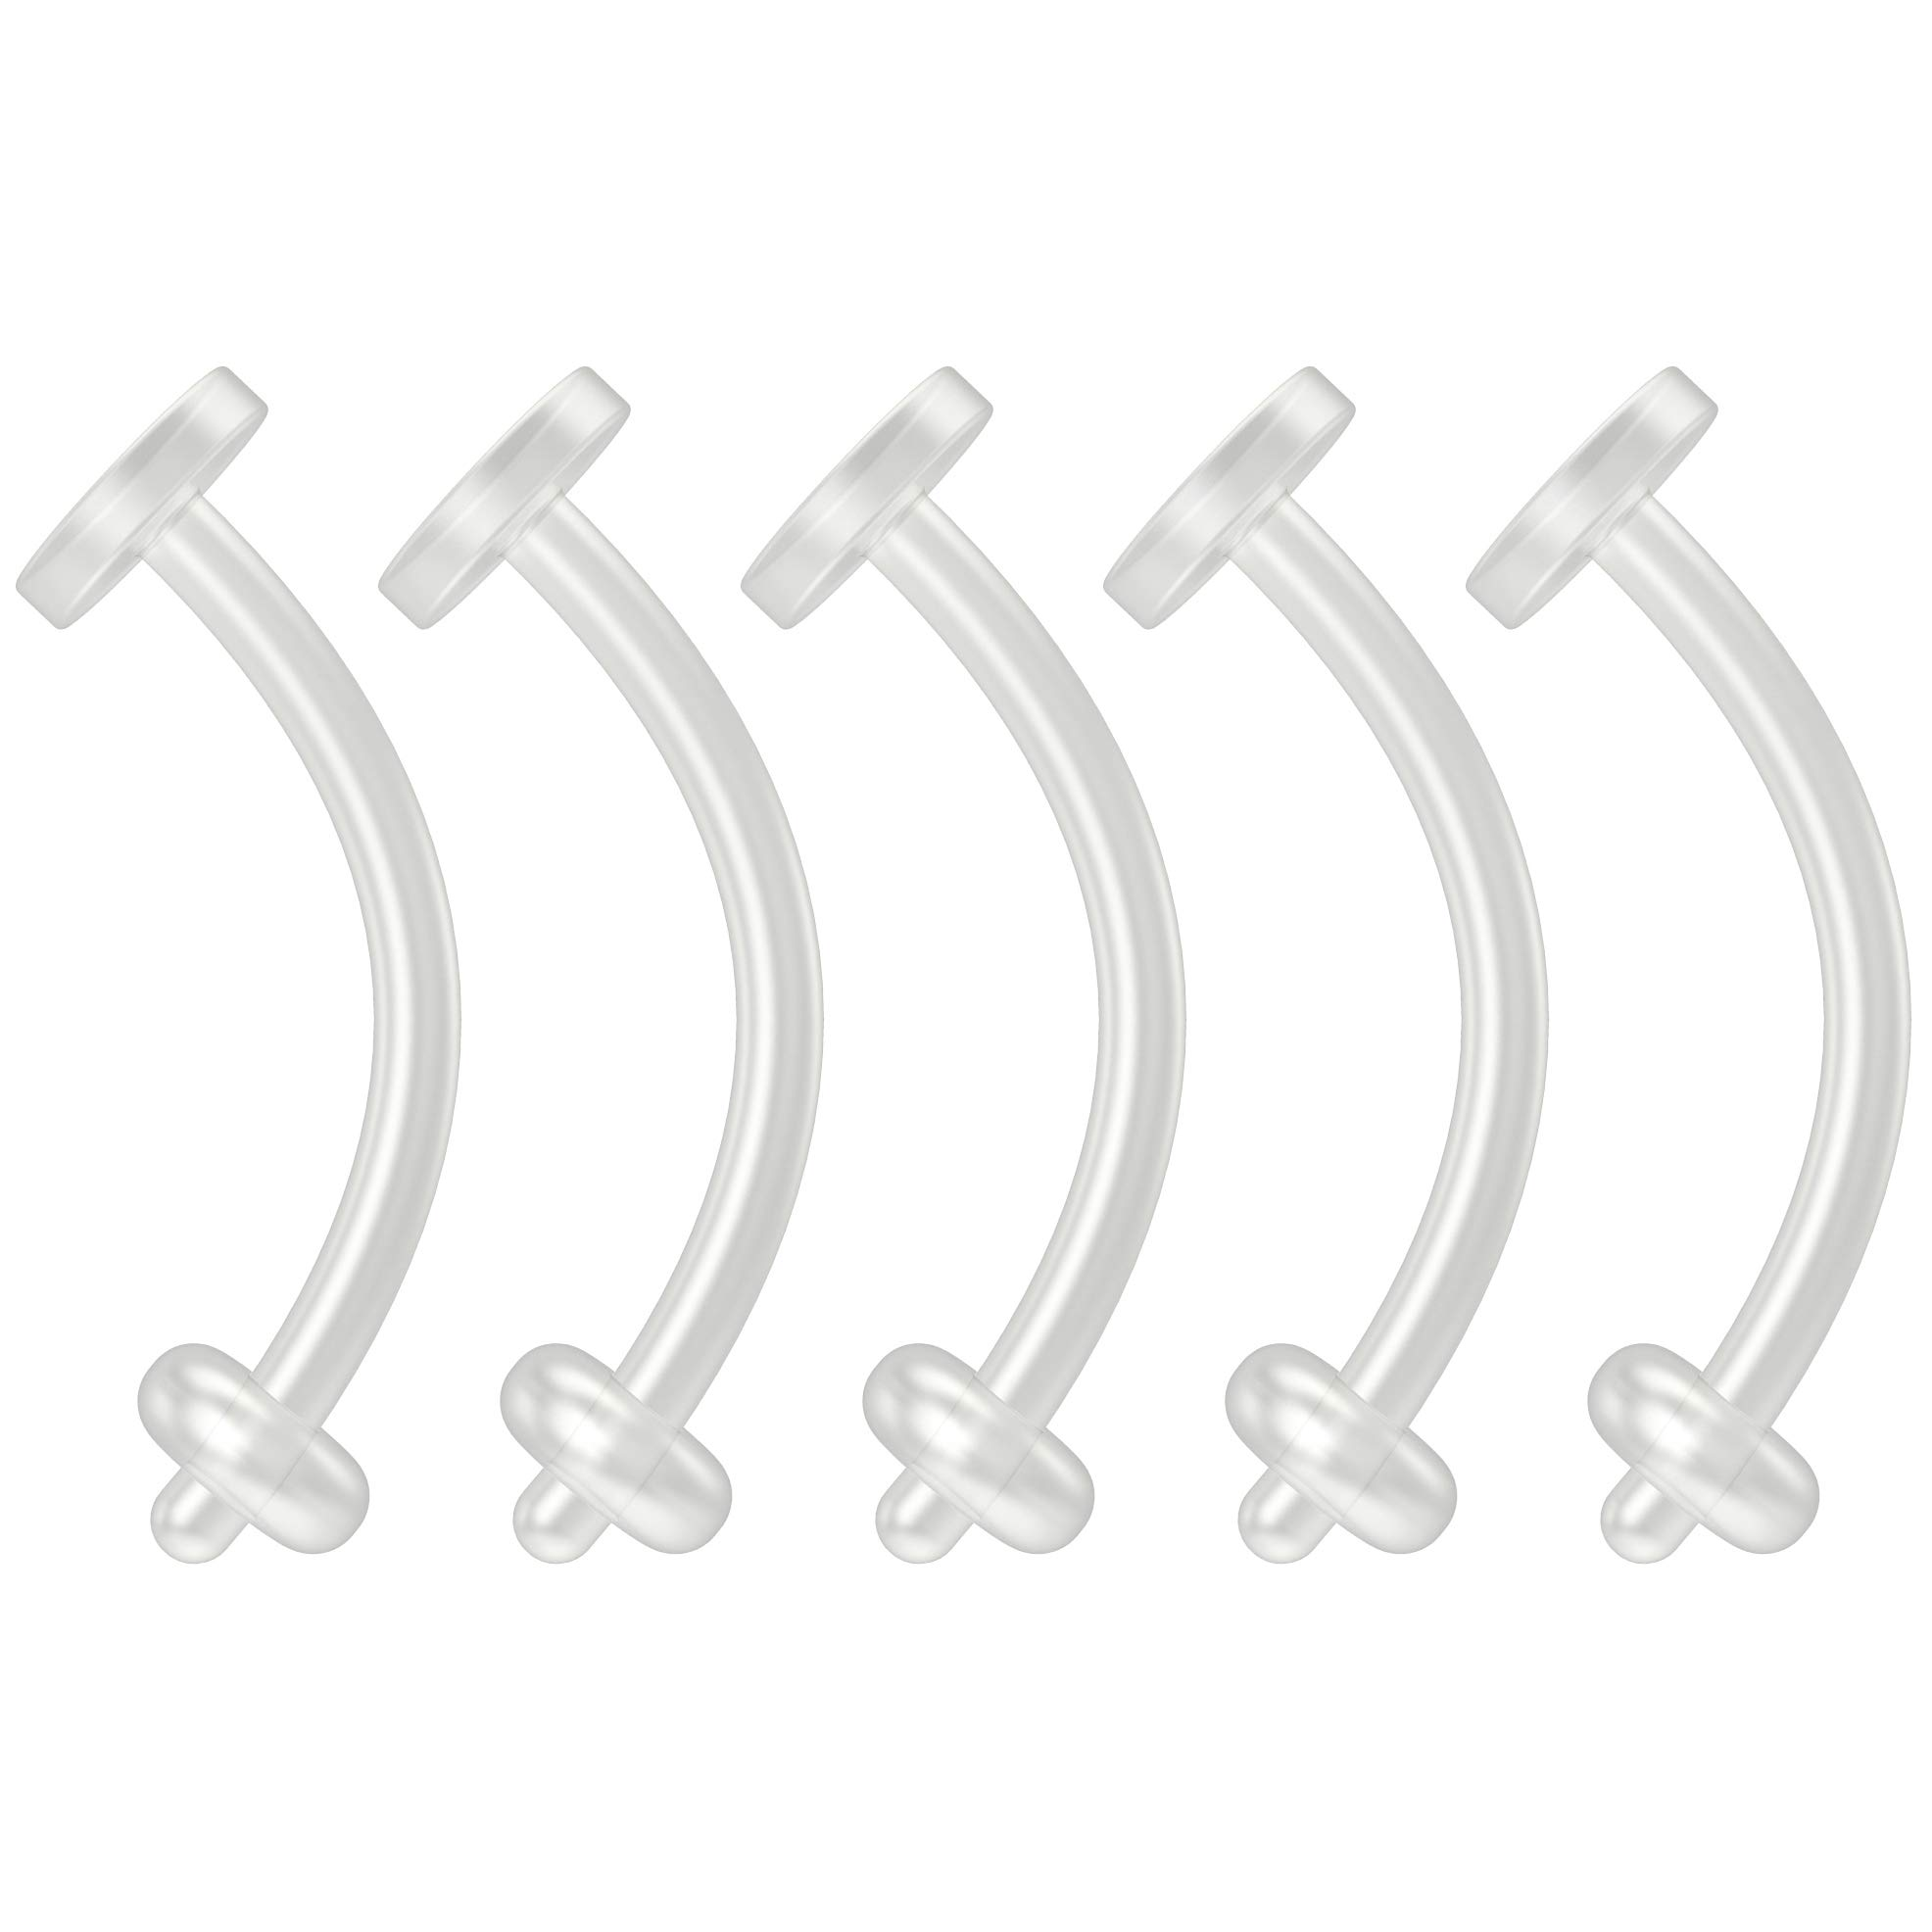 5pc 16g Cartilage Piercing Retainer Flexible Clear BioFlex Curved Barbell Bioplast Piercing 10mm 3/8 by Bling Piercing